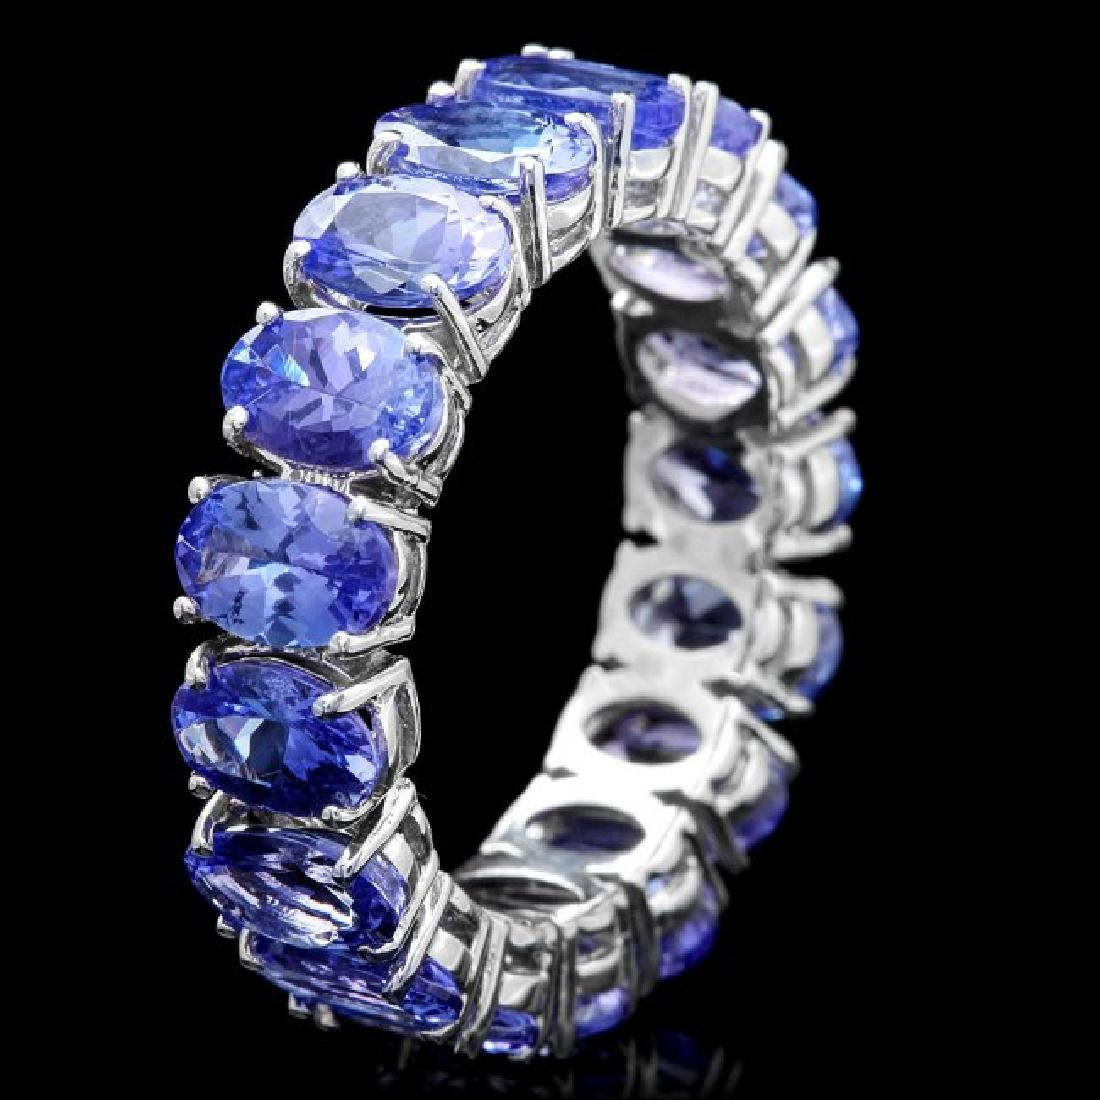 14k White Gold 8.00ct Tanzanite Ring - 3